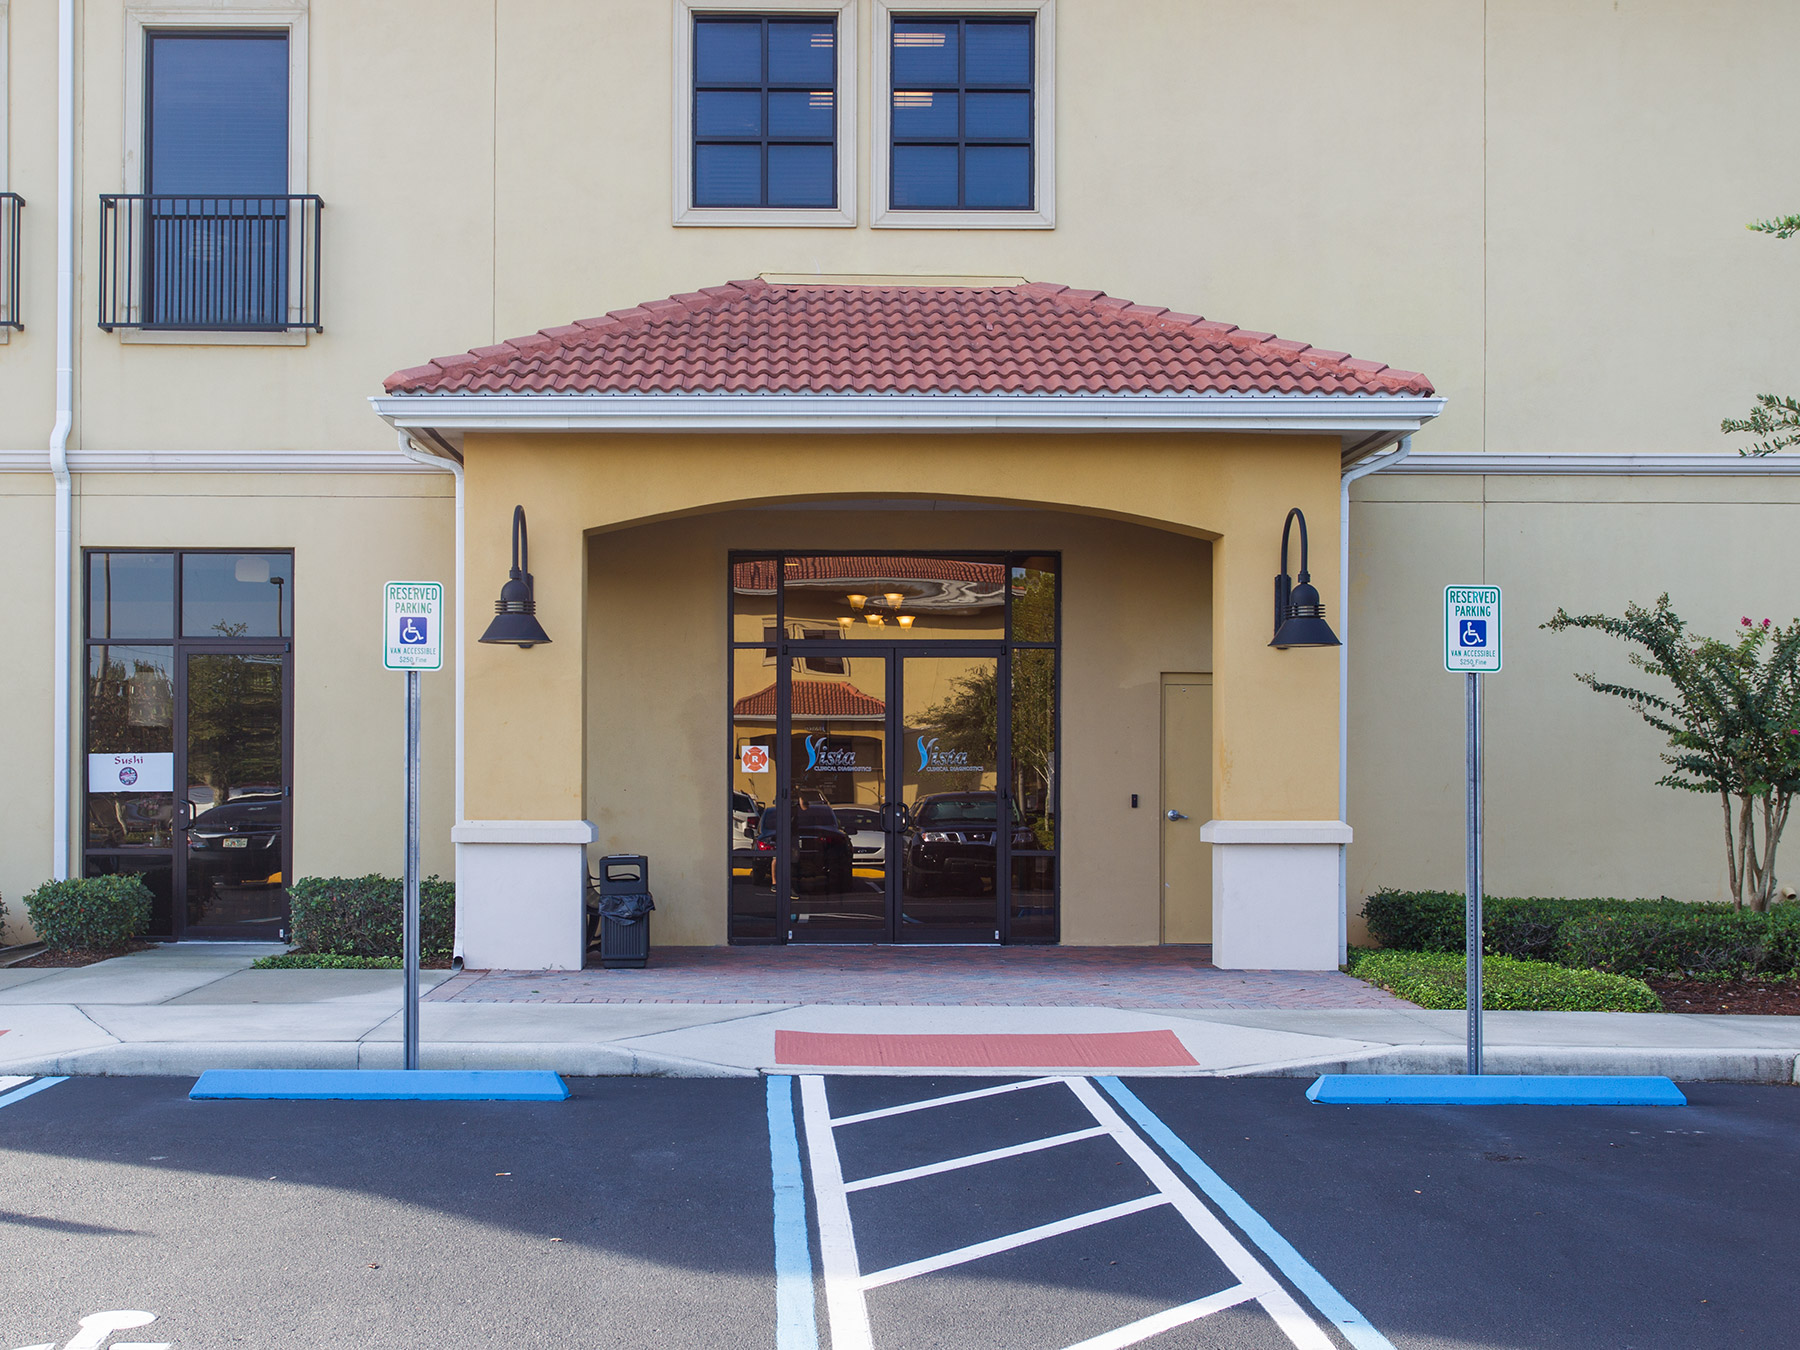 Churches For Sale In Tampa >> Strip Center For Sale on HWY 27 - Clermont, FL - US ...